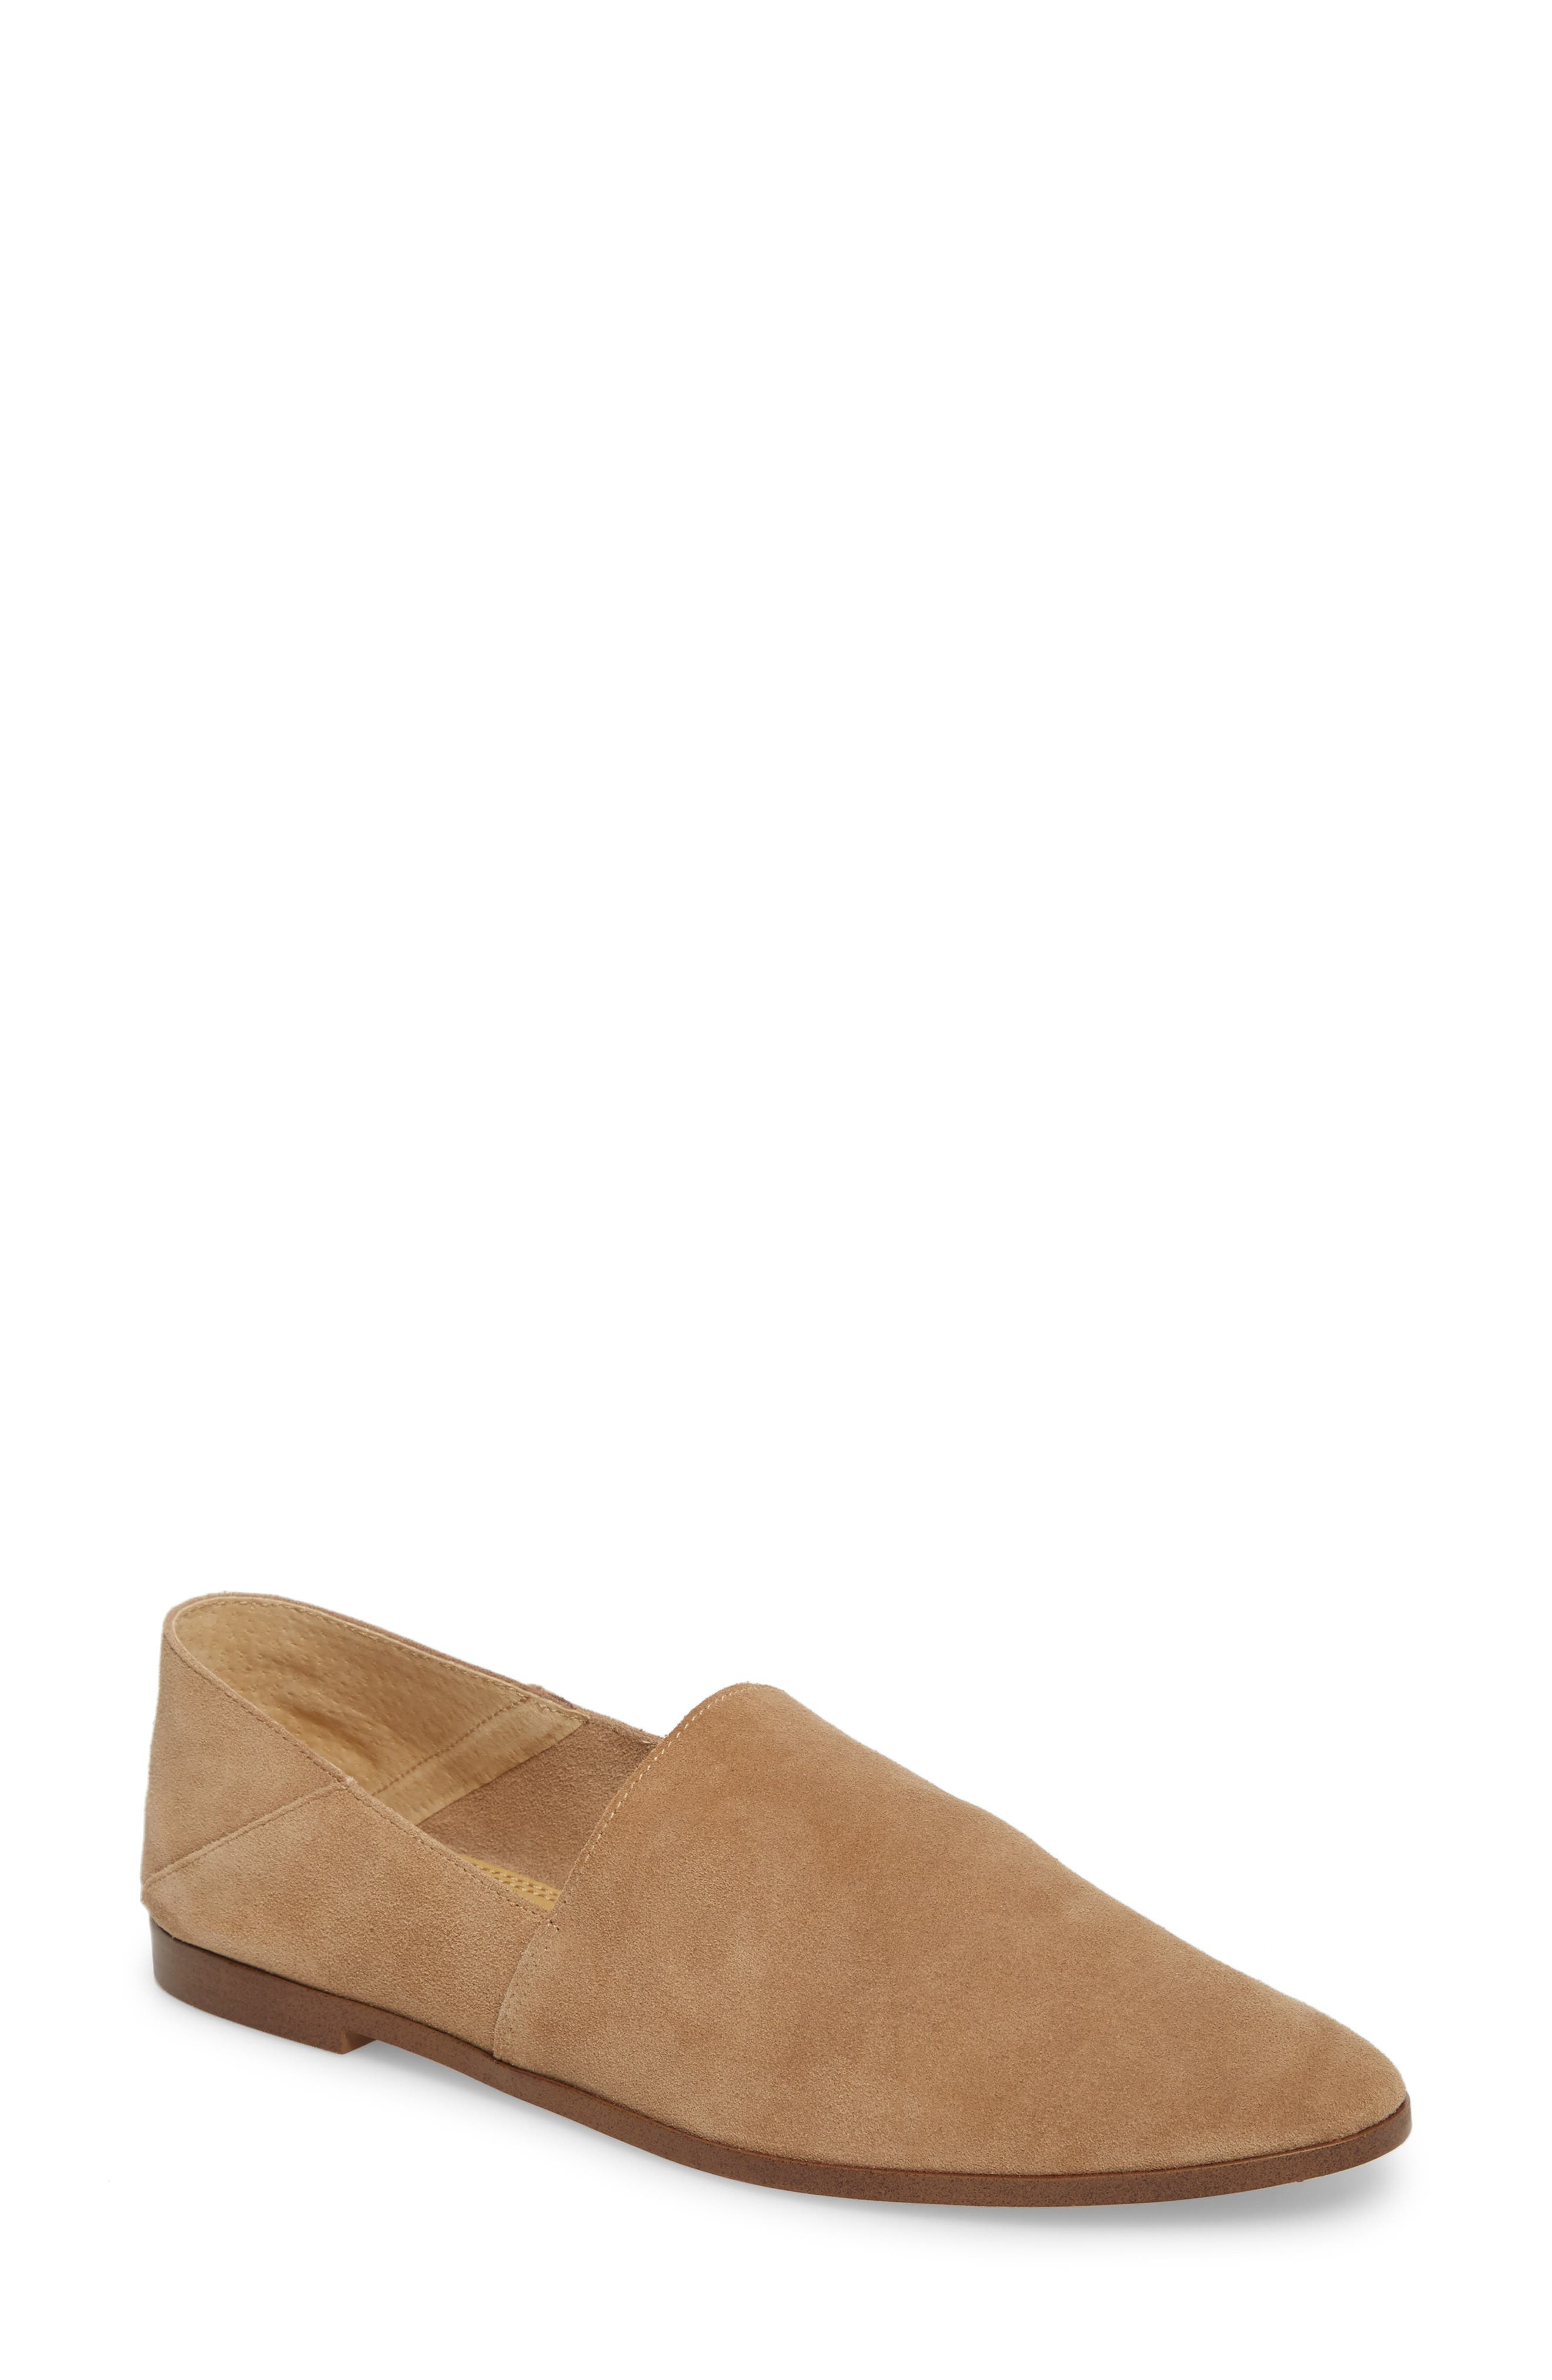 SPLENDID Babette Almond Toe Flat, Main, color, 252